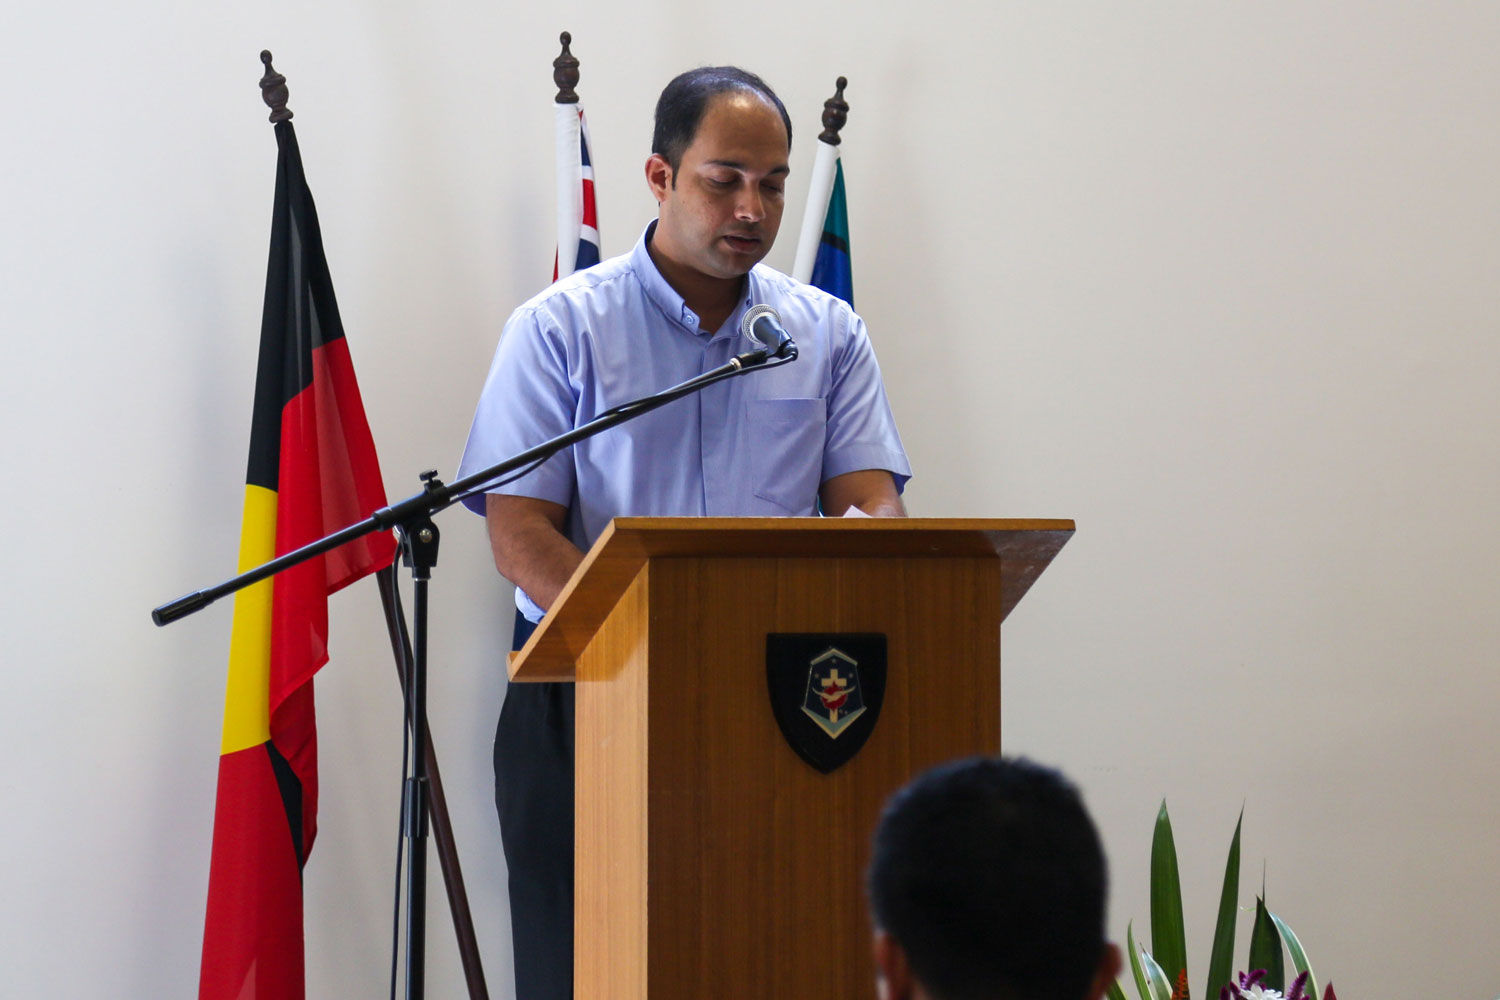 a man stands at a lectern, The Australian, Aboriginal, and Torres Strait Islander flags behind, looking down at his notes